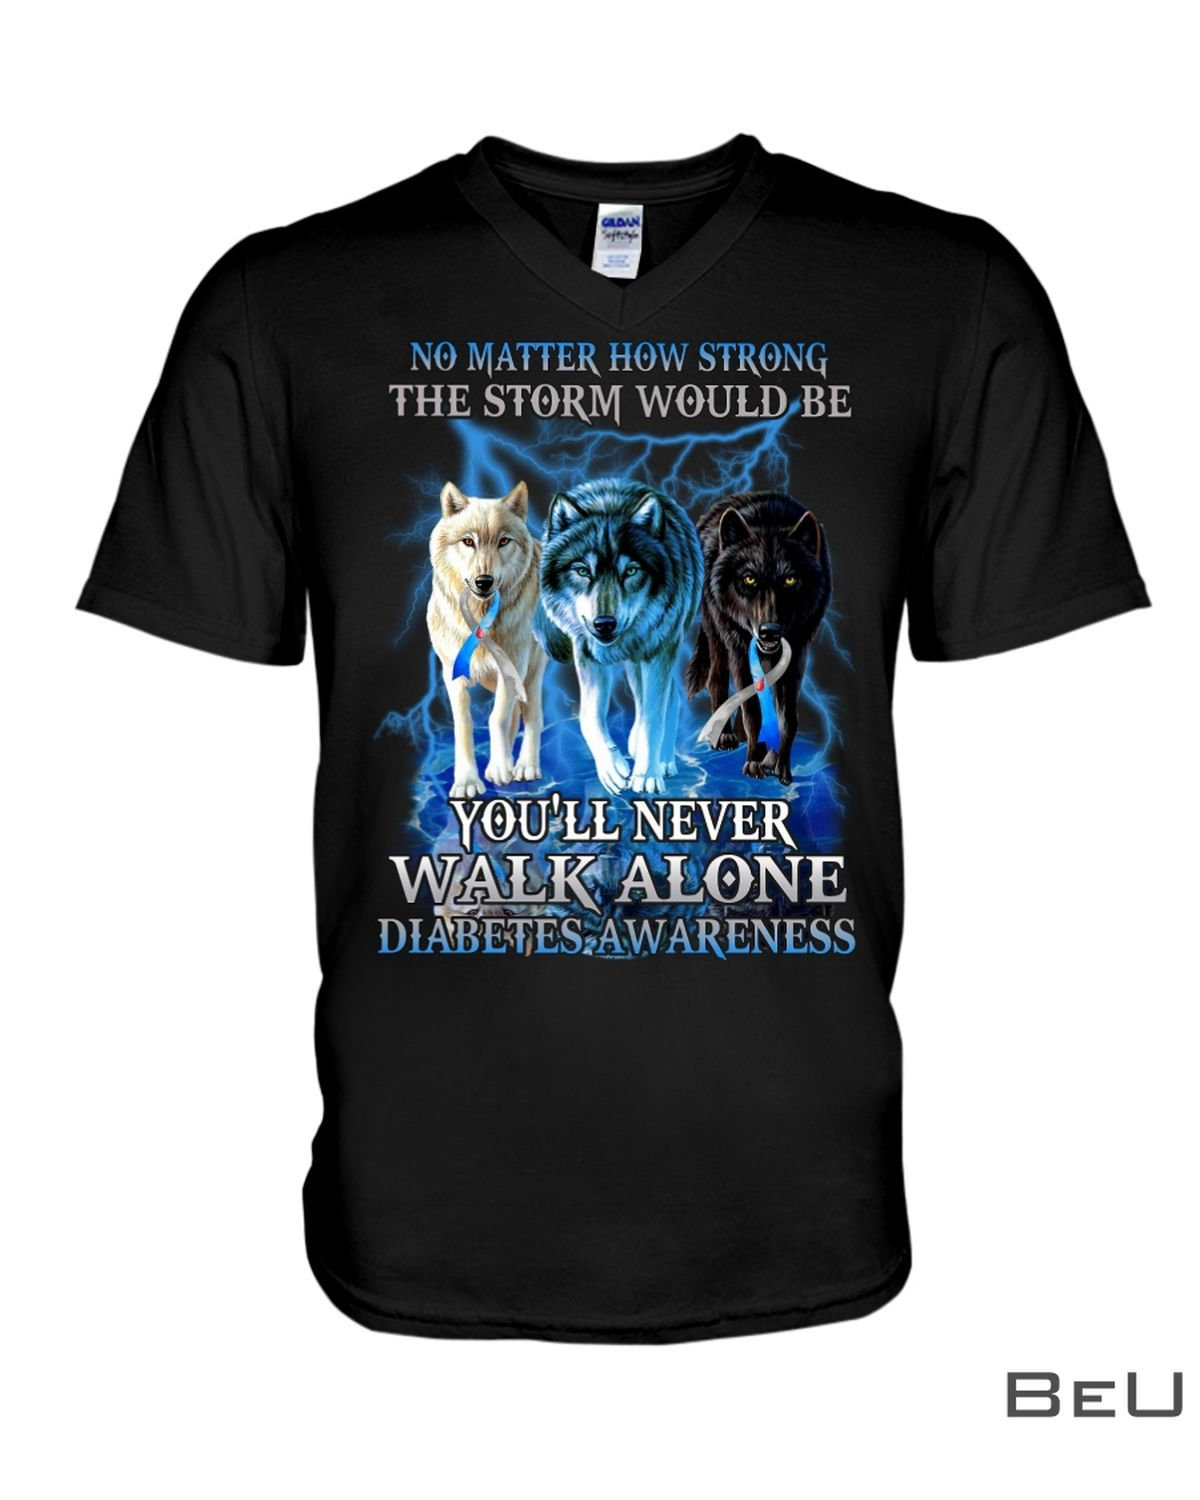 No Matter How Strong The Storm Would Be You'll Never Walk Alone Diabetes Awareness Shirtx